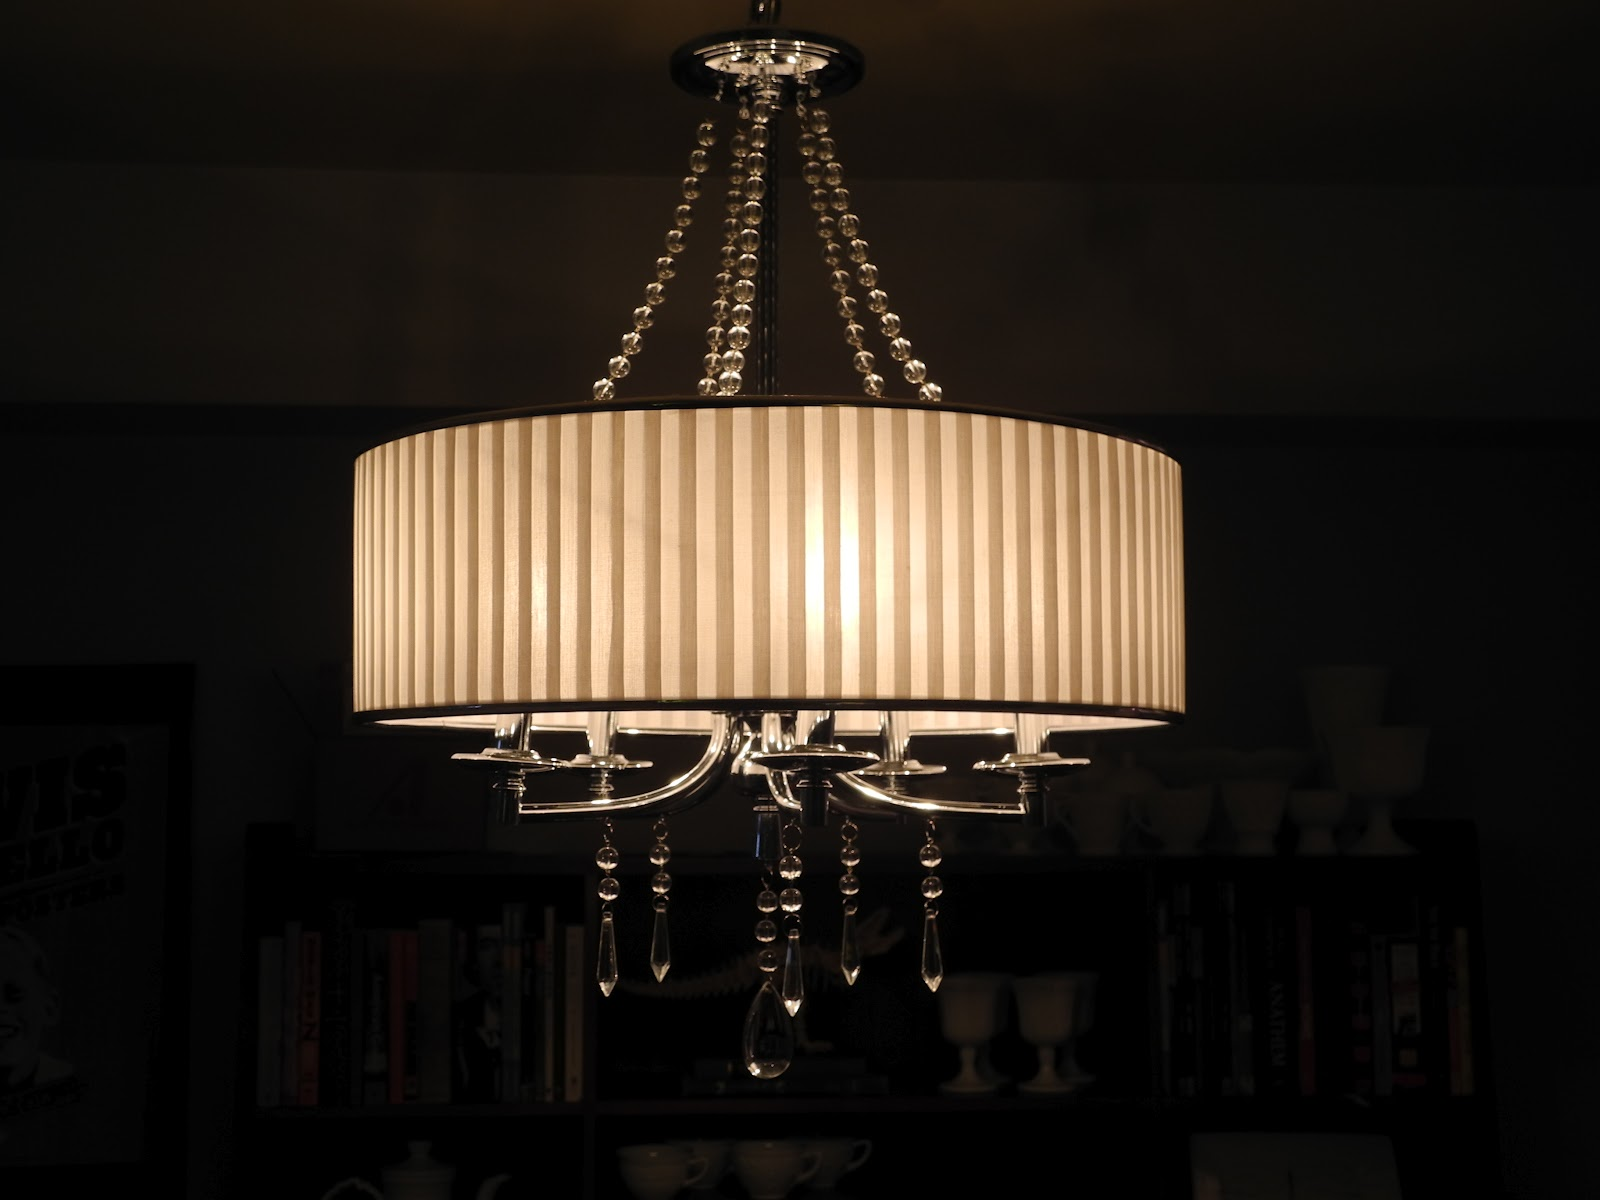 Lamp Shades For Chandeliers at Home and Interior Design Ideas